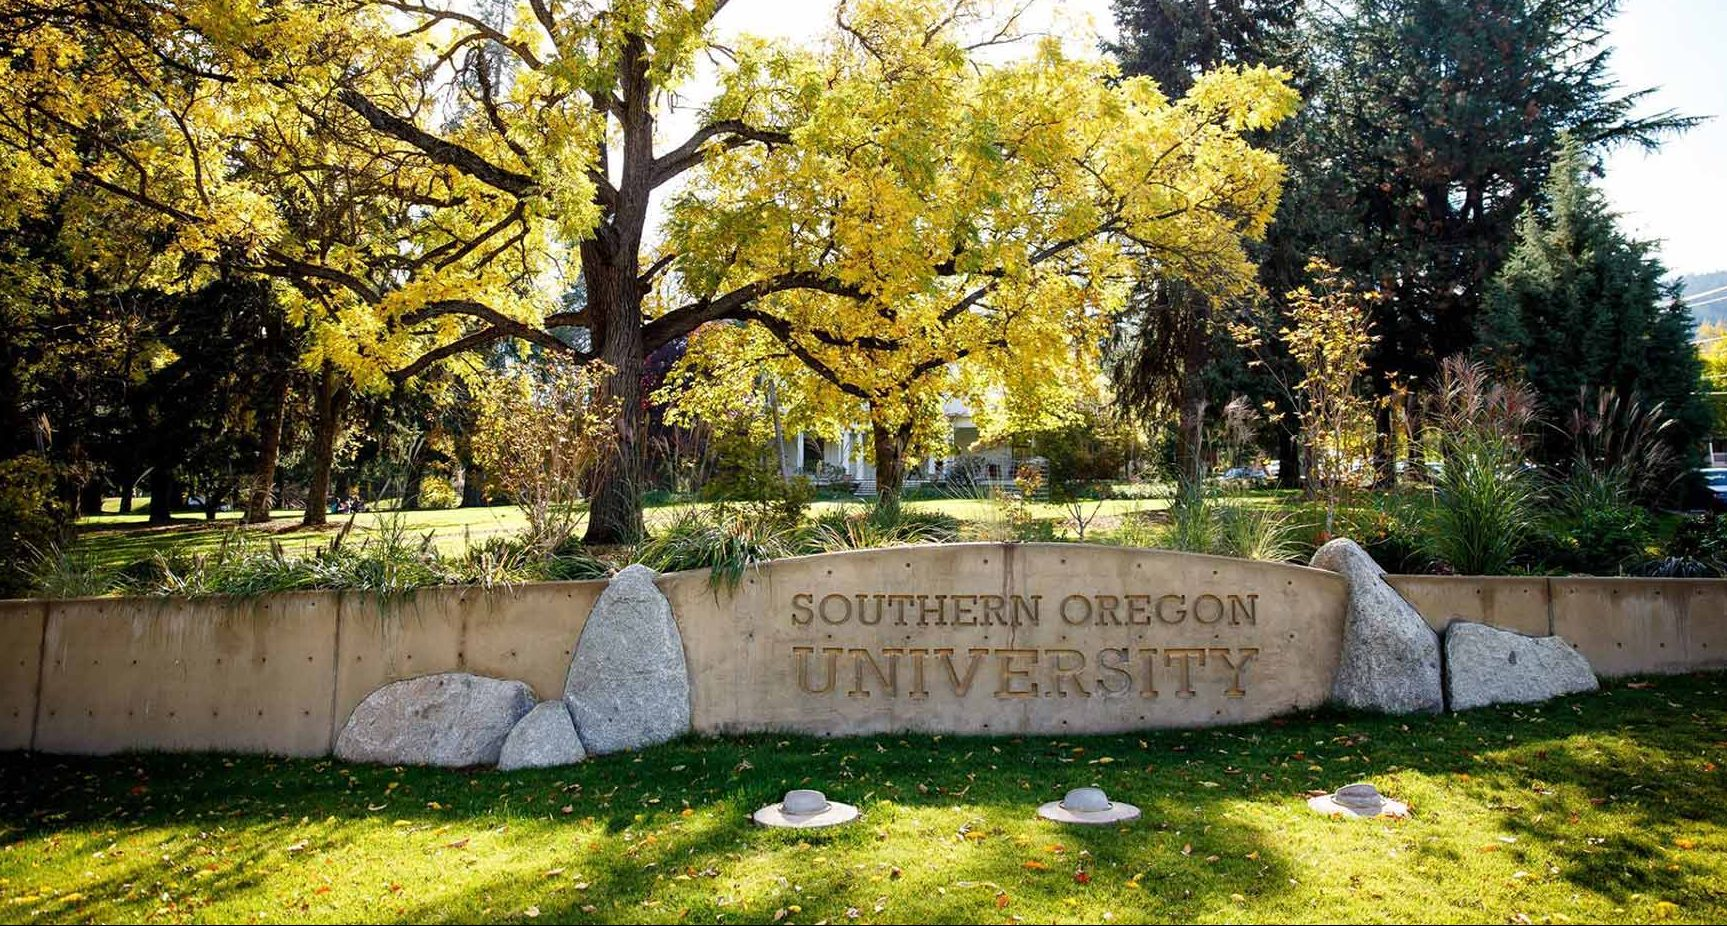 Rock sign at Southern Oregon University - Trees and grass in the background